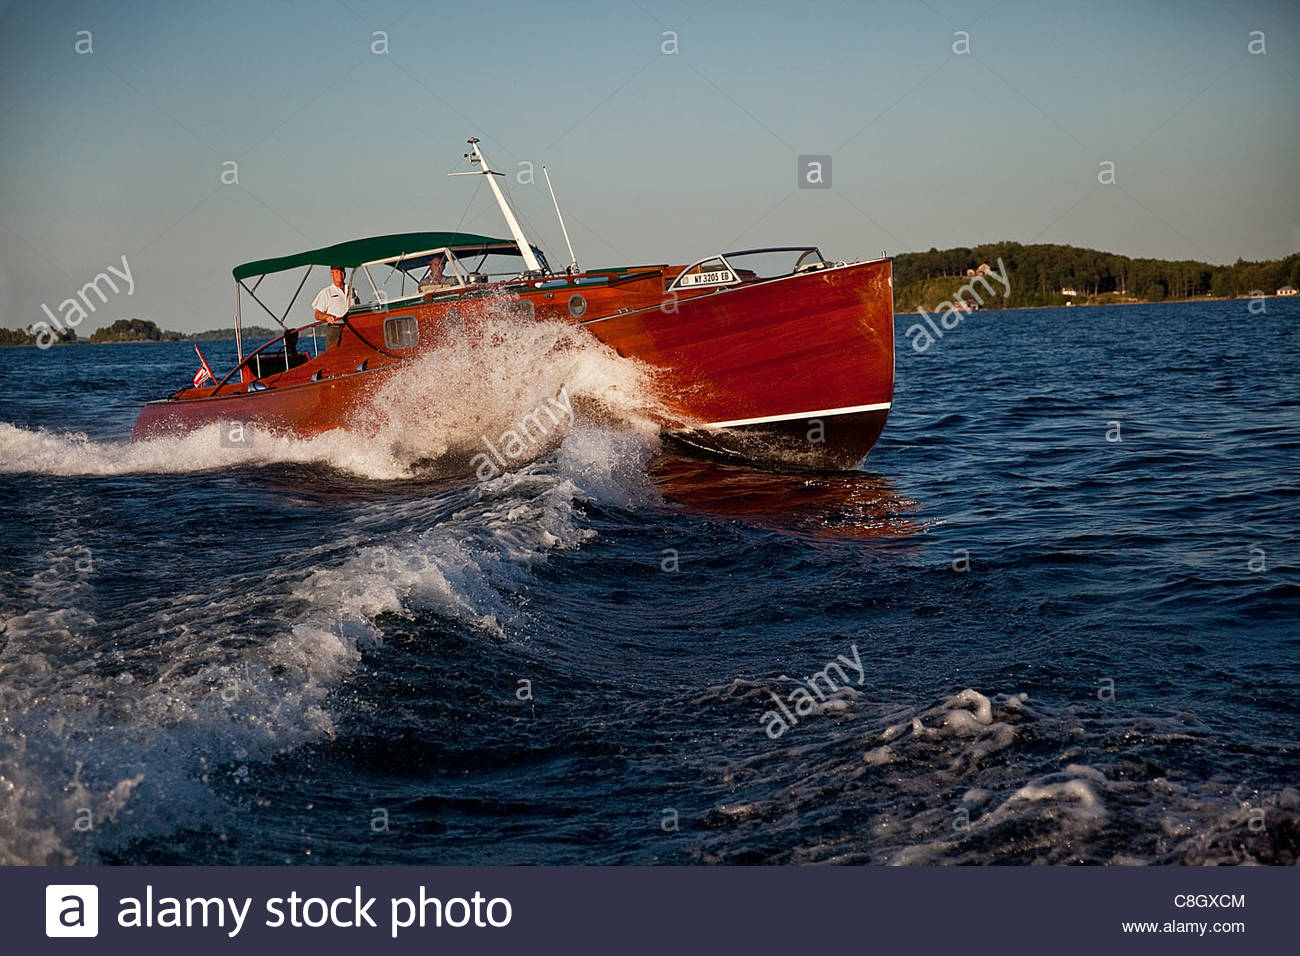 A Zipper boat from the Antique Boat Museum. - Stock Image